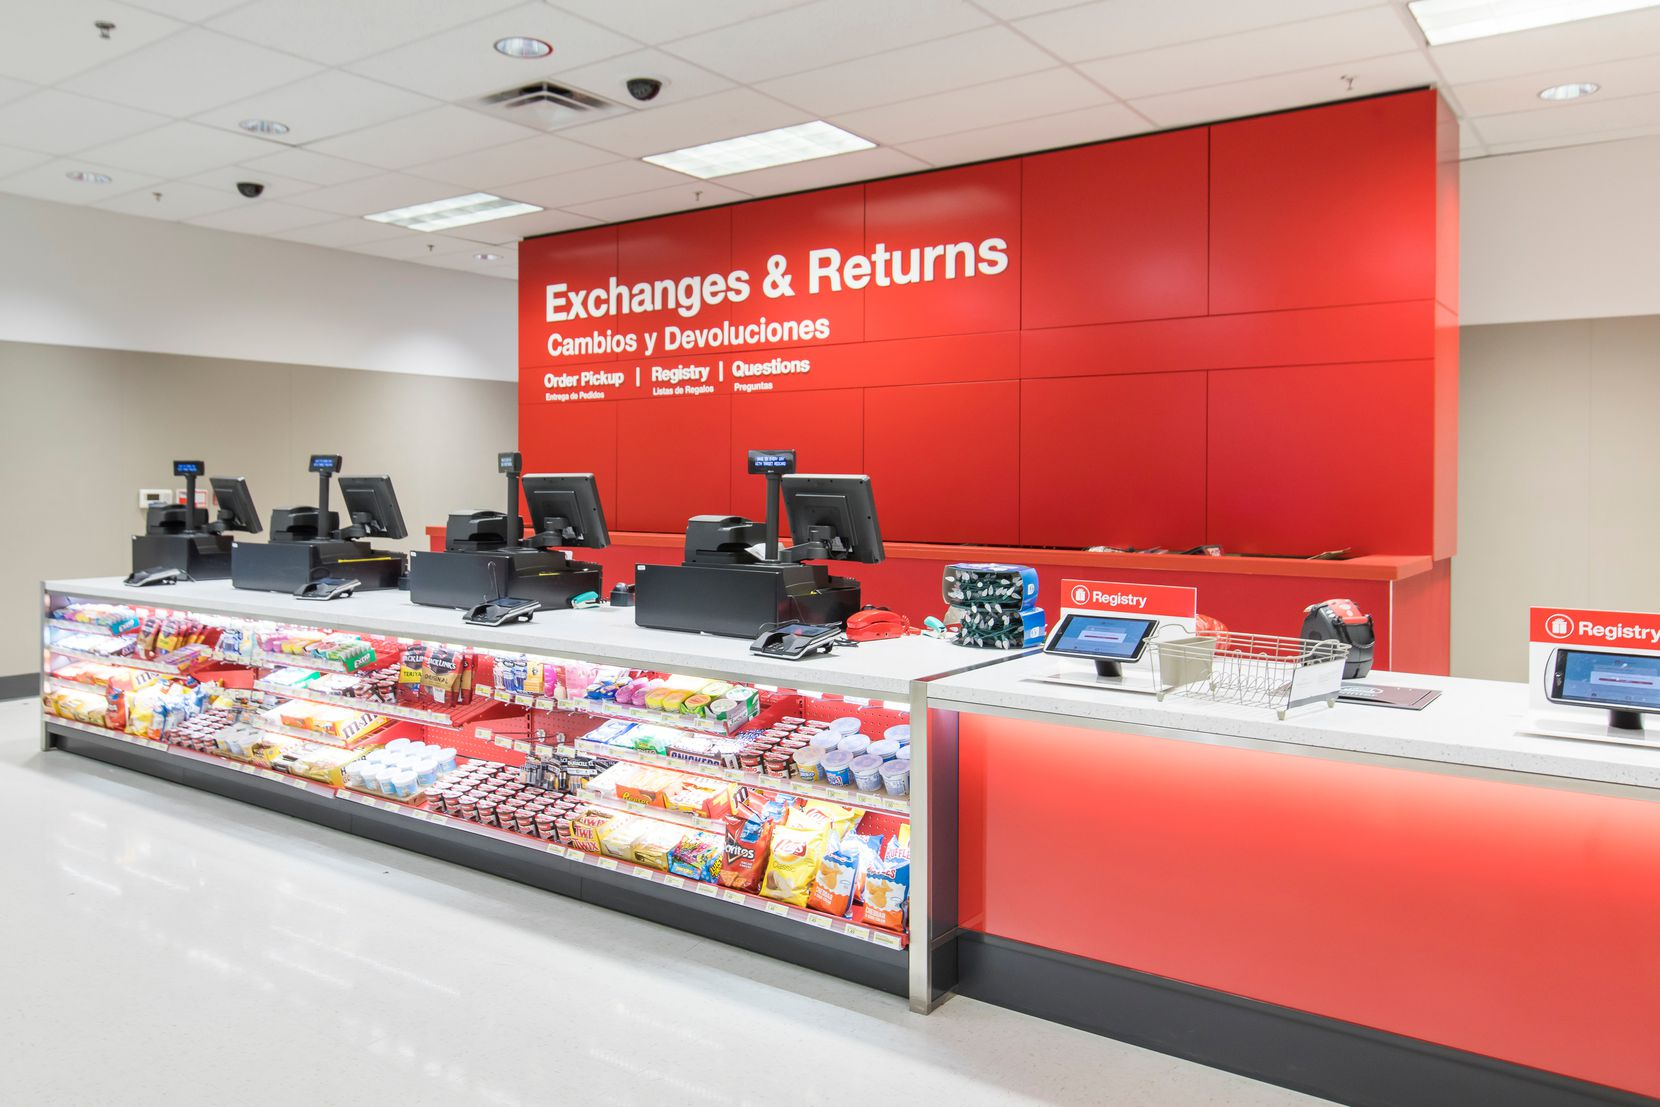 New guest services area for online order pickups and other services.  (Tim Mueller/AP Images for Target)